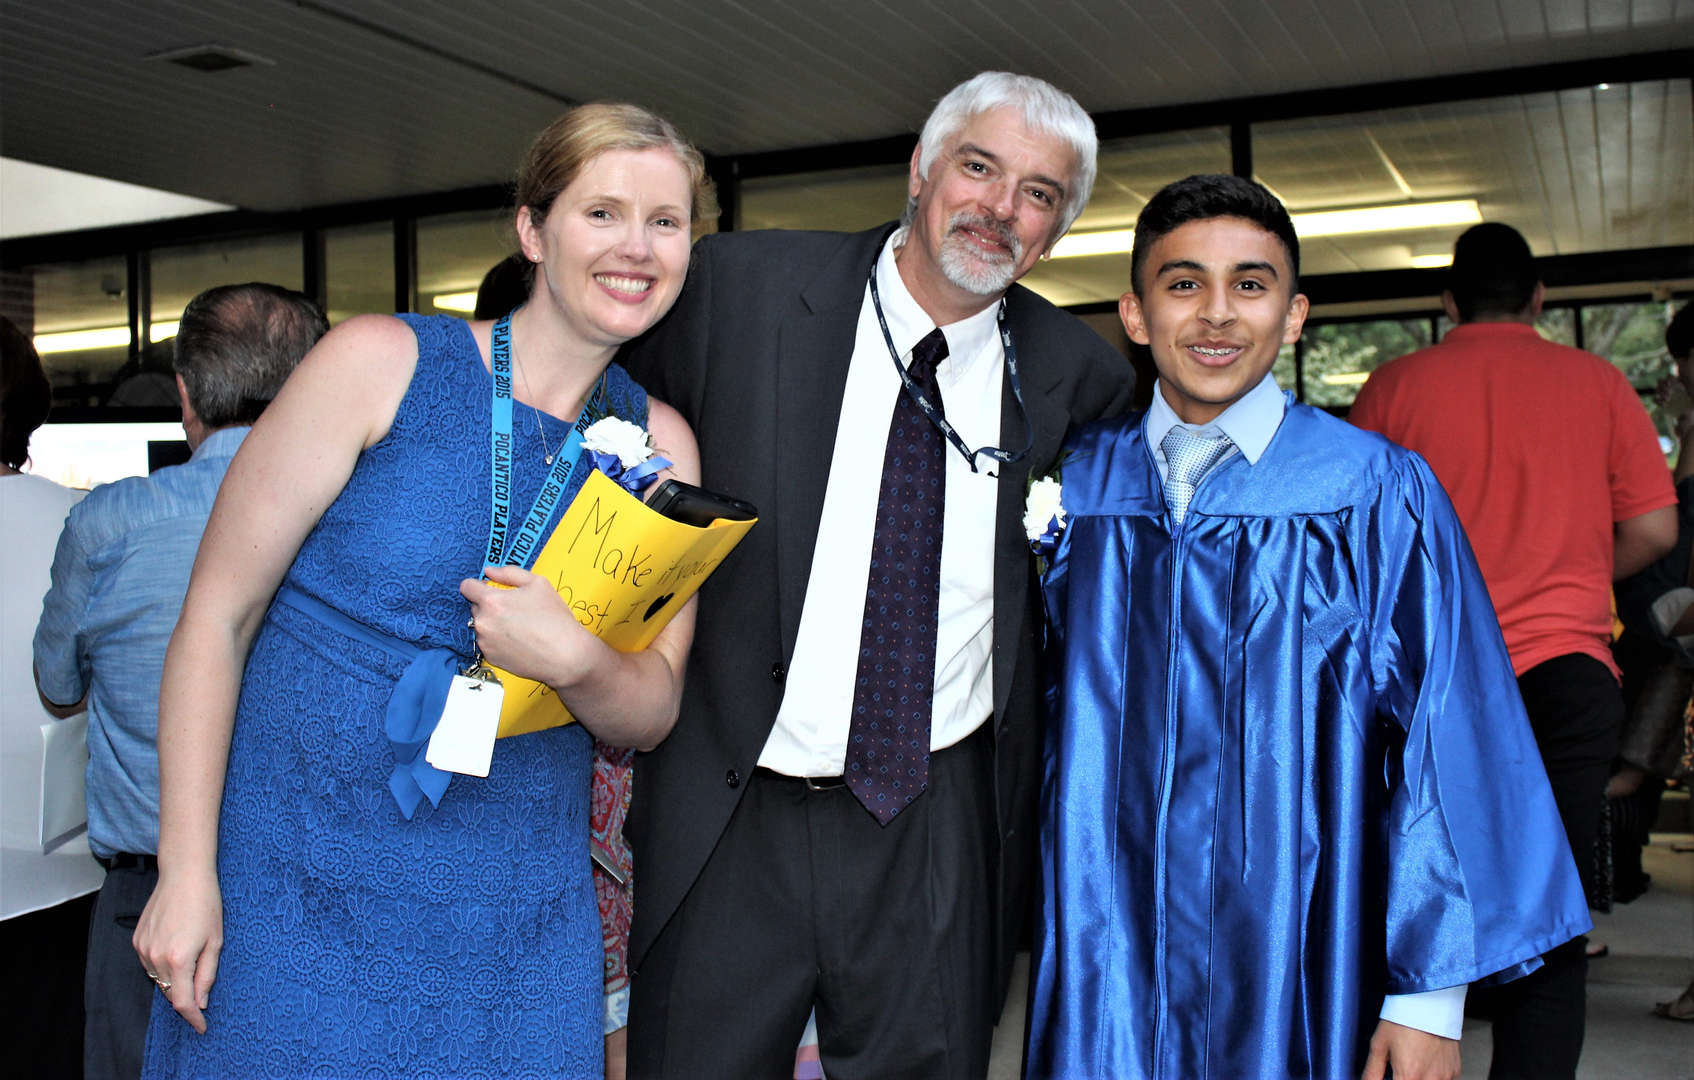 A student poses with two teachers after the ceremony.